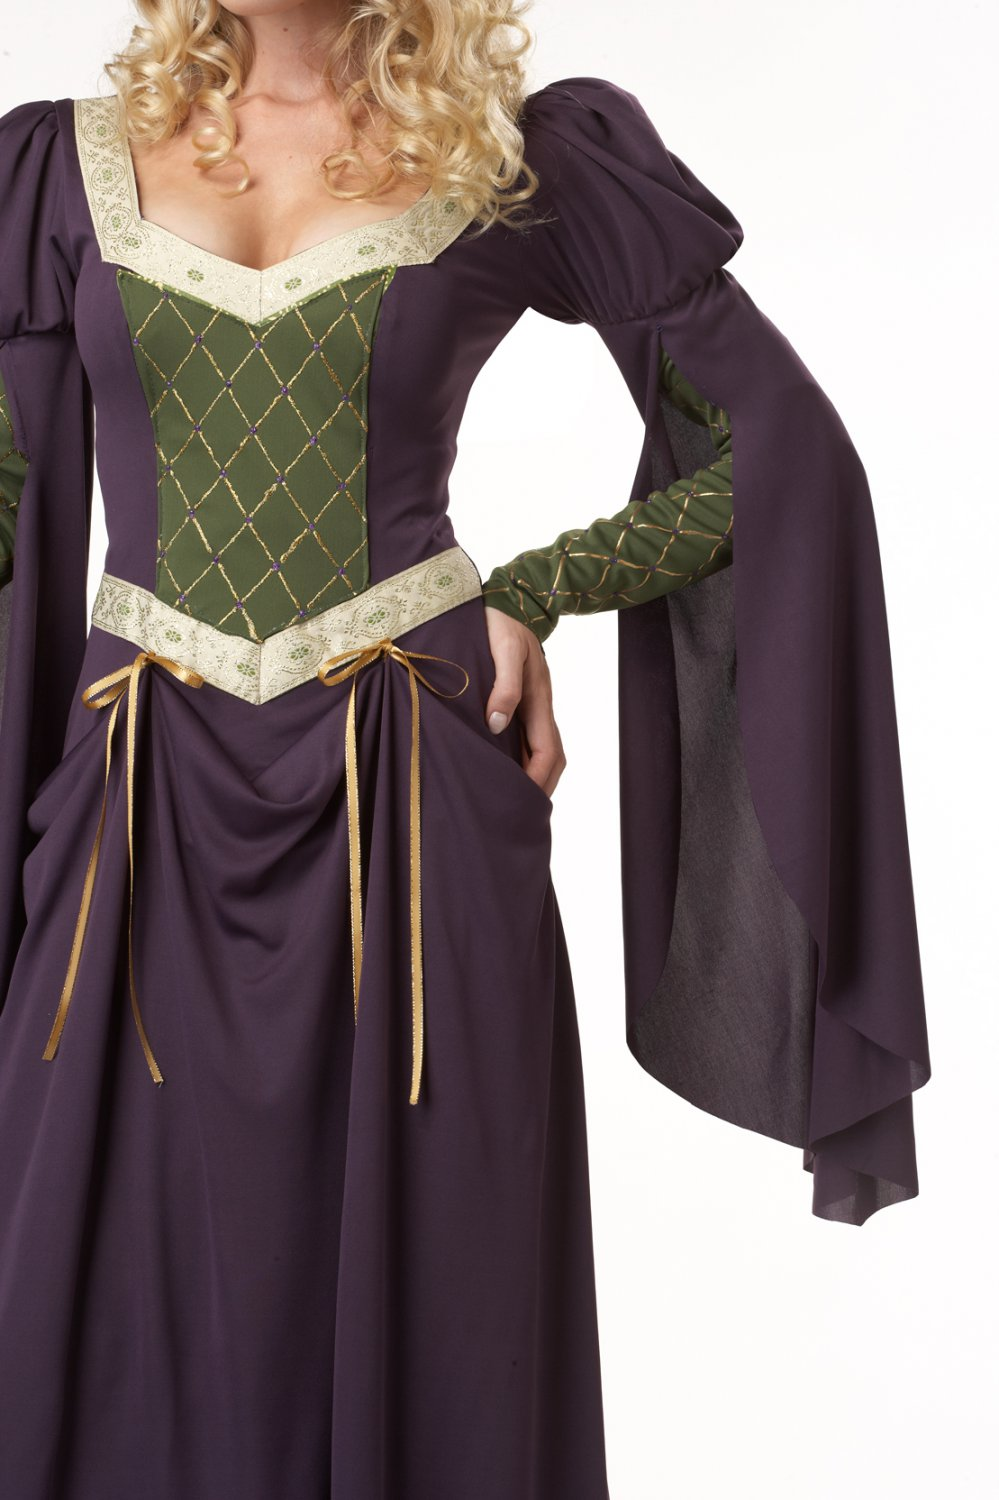 women in medieval times In medieval times, noble women had almost no rights she was allowed to run the manor house, but quite often had servants to do the actual work a noble woman's job was to have children, and to raise children a noble woman's life was very restrictive.